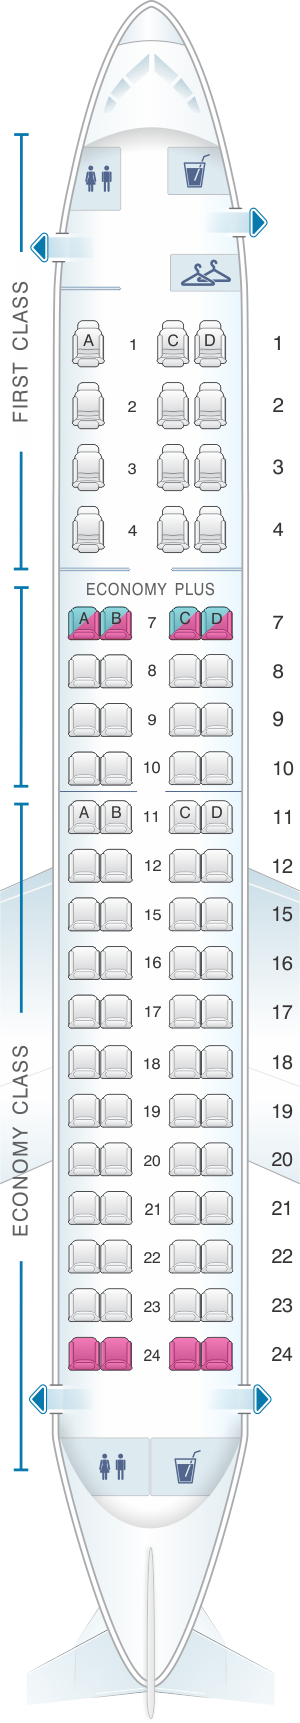 Seat map for United Airlines Embraer EMB 175